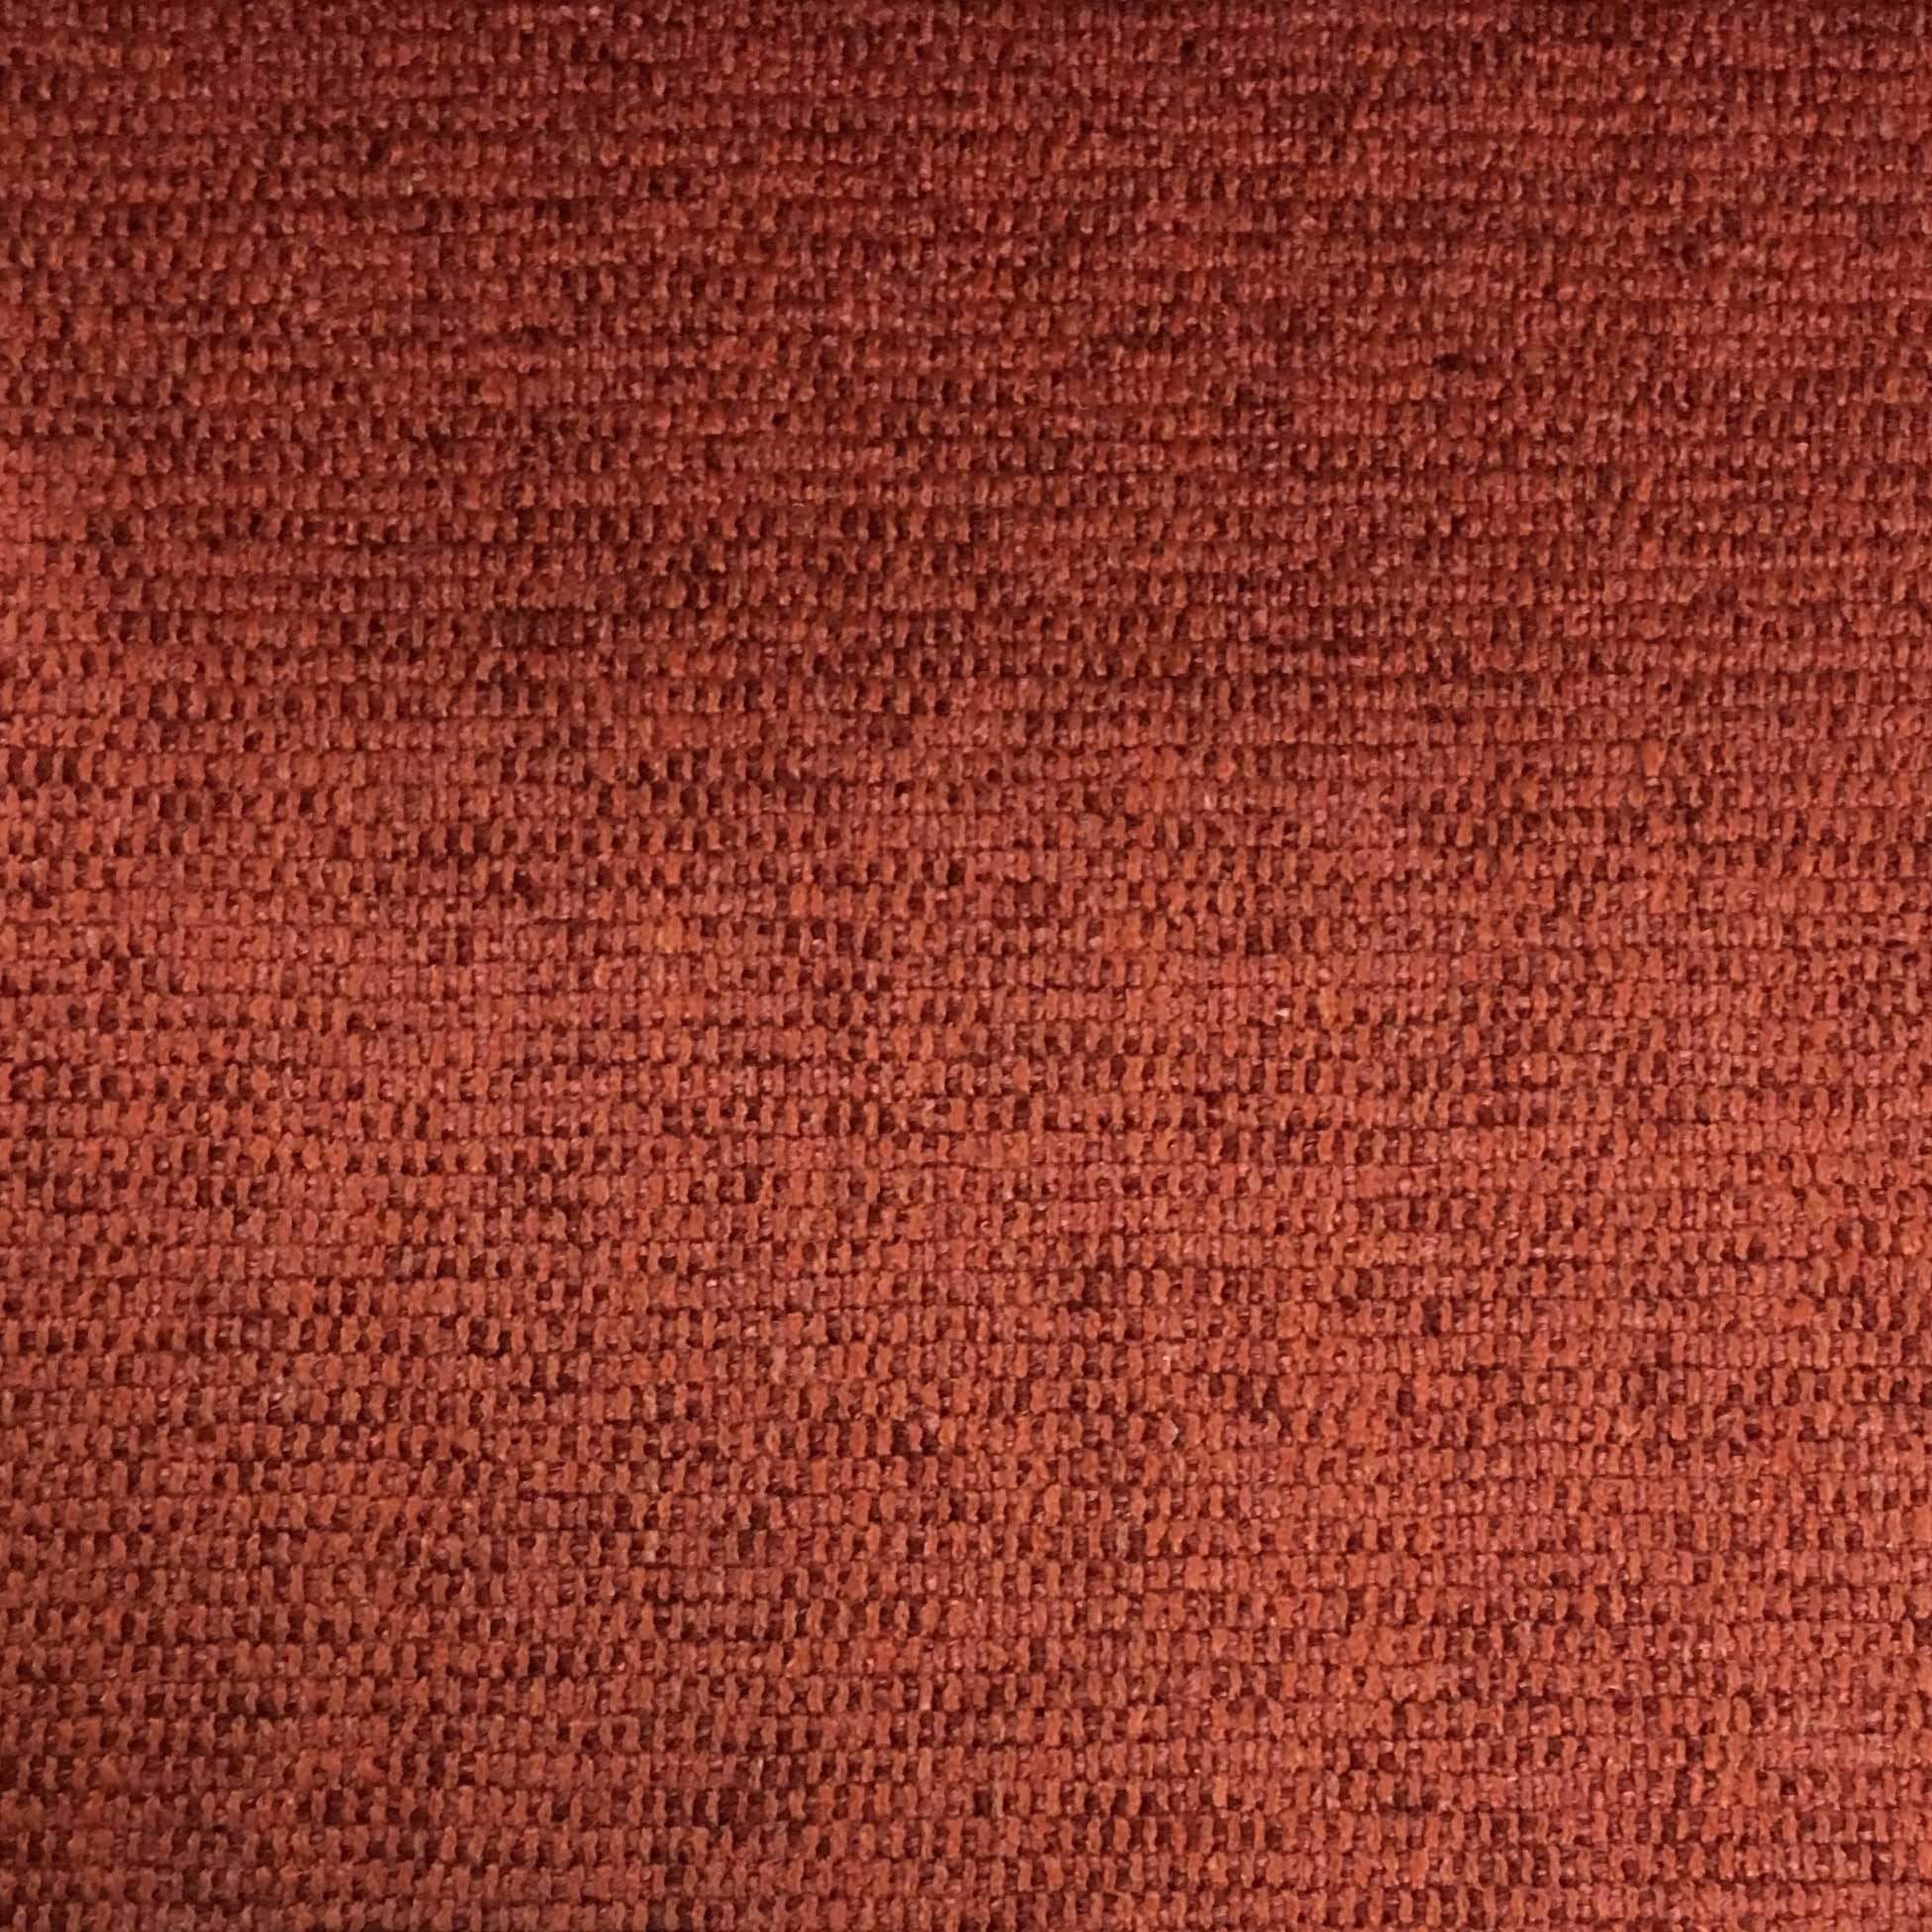 Hugh Woven Linen Upholstery Fabric By The Yard 22 Colors